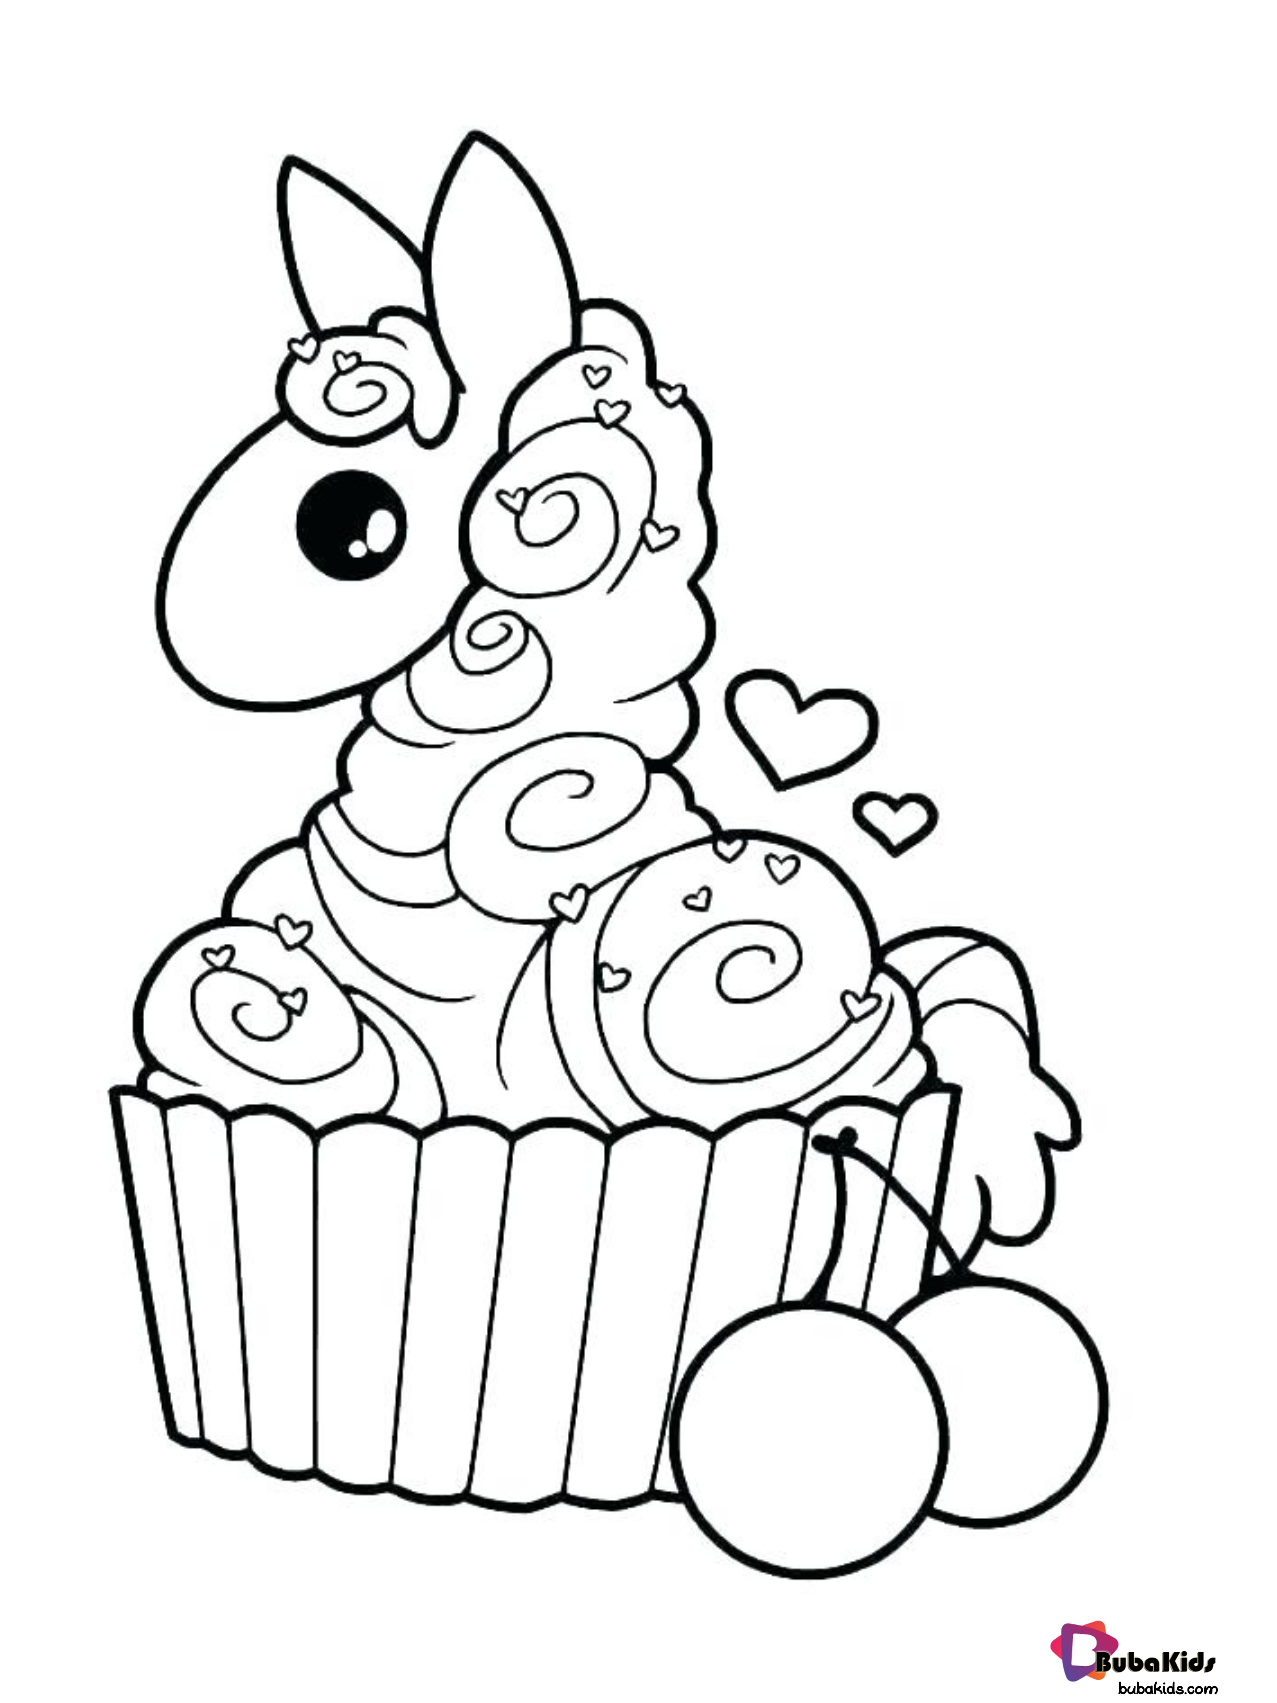 Cute Llama Printable Coloring Page Collection Of Cartoon Coloring Pages For Teenage Printabl Free Kids Coloring Pages Coloring Pages Printable Coloring Pages